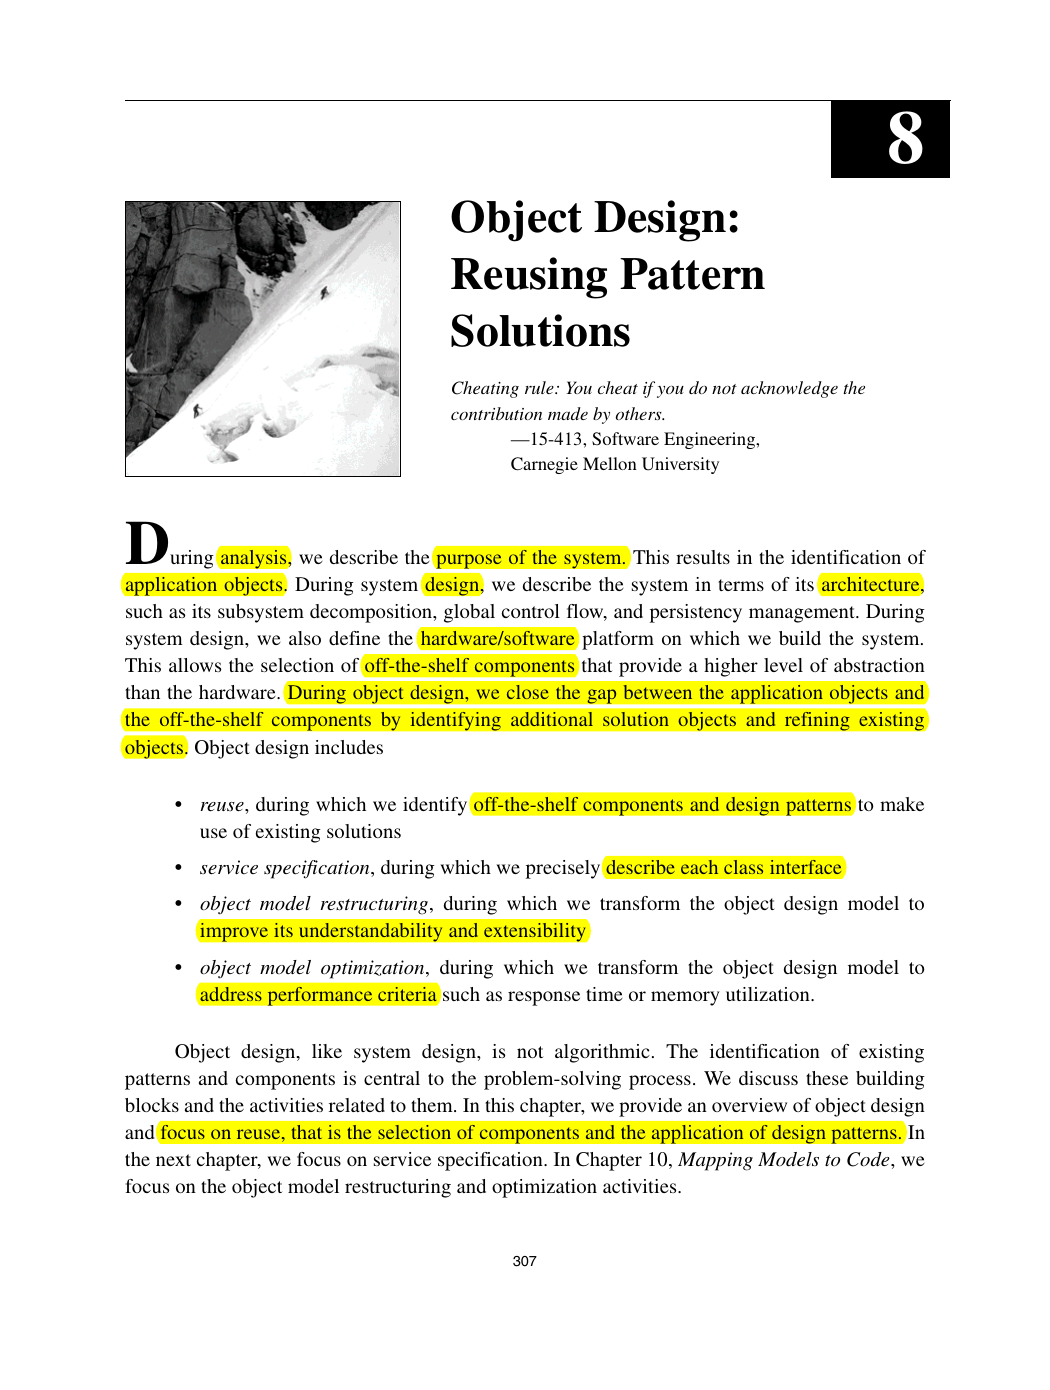 Chapter8 Object Design Reusing Pattern Solutions